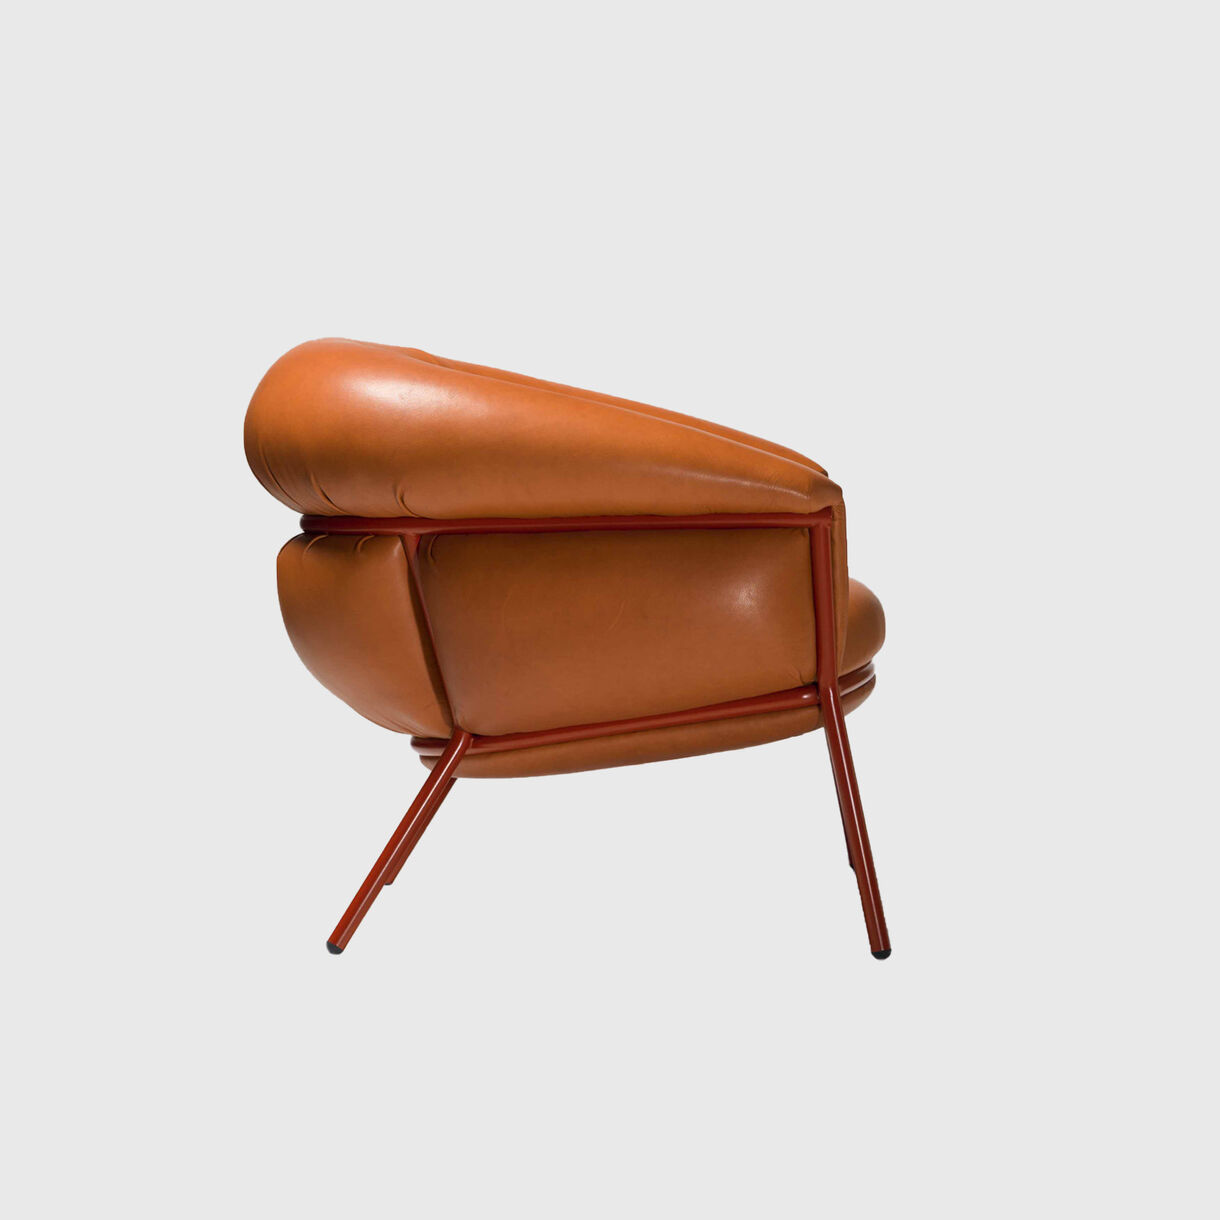 Grasso Armchair, Sauvage Grapefruit